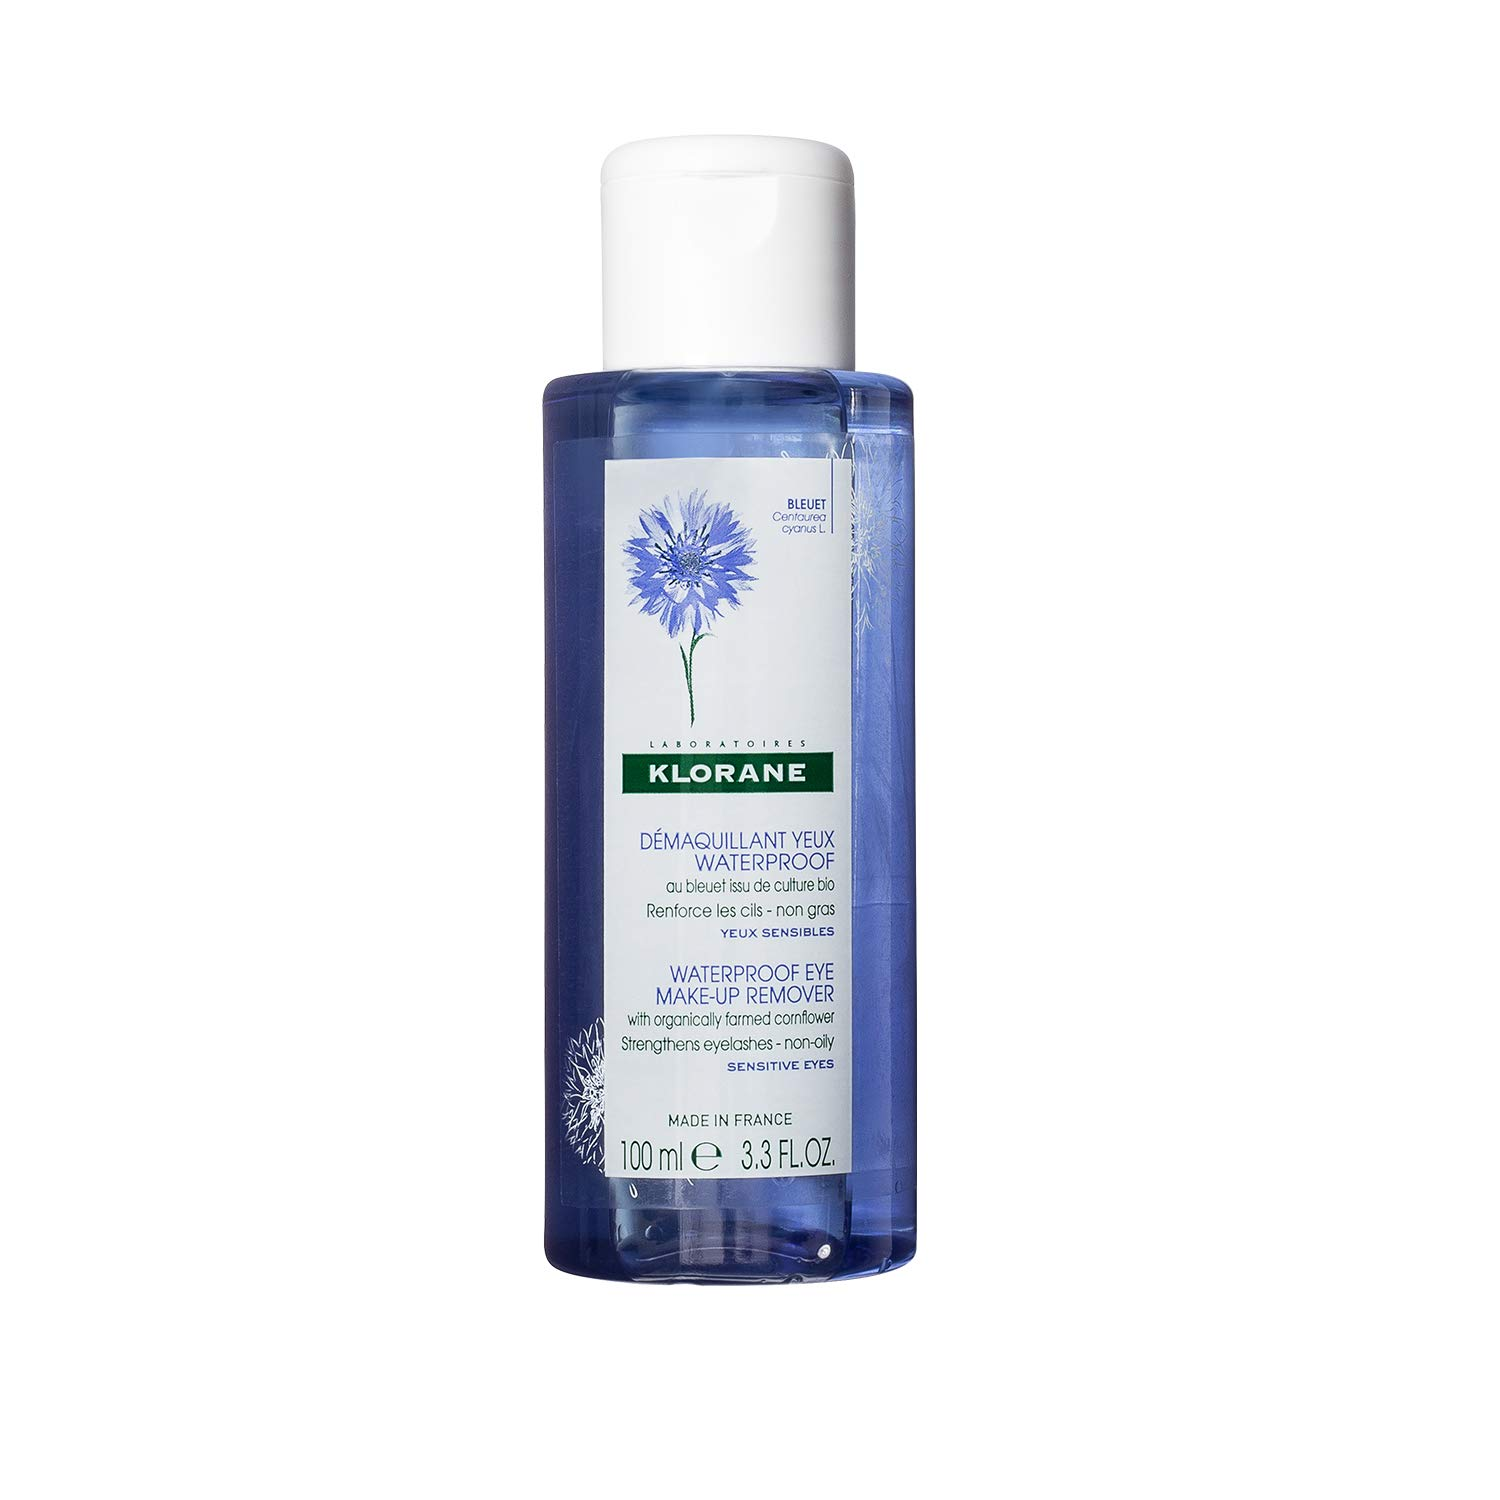 Klorane Waterproof eye make-up remover with organically farmed Cornflower, 3.4 fl. oz.